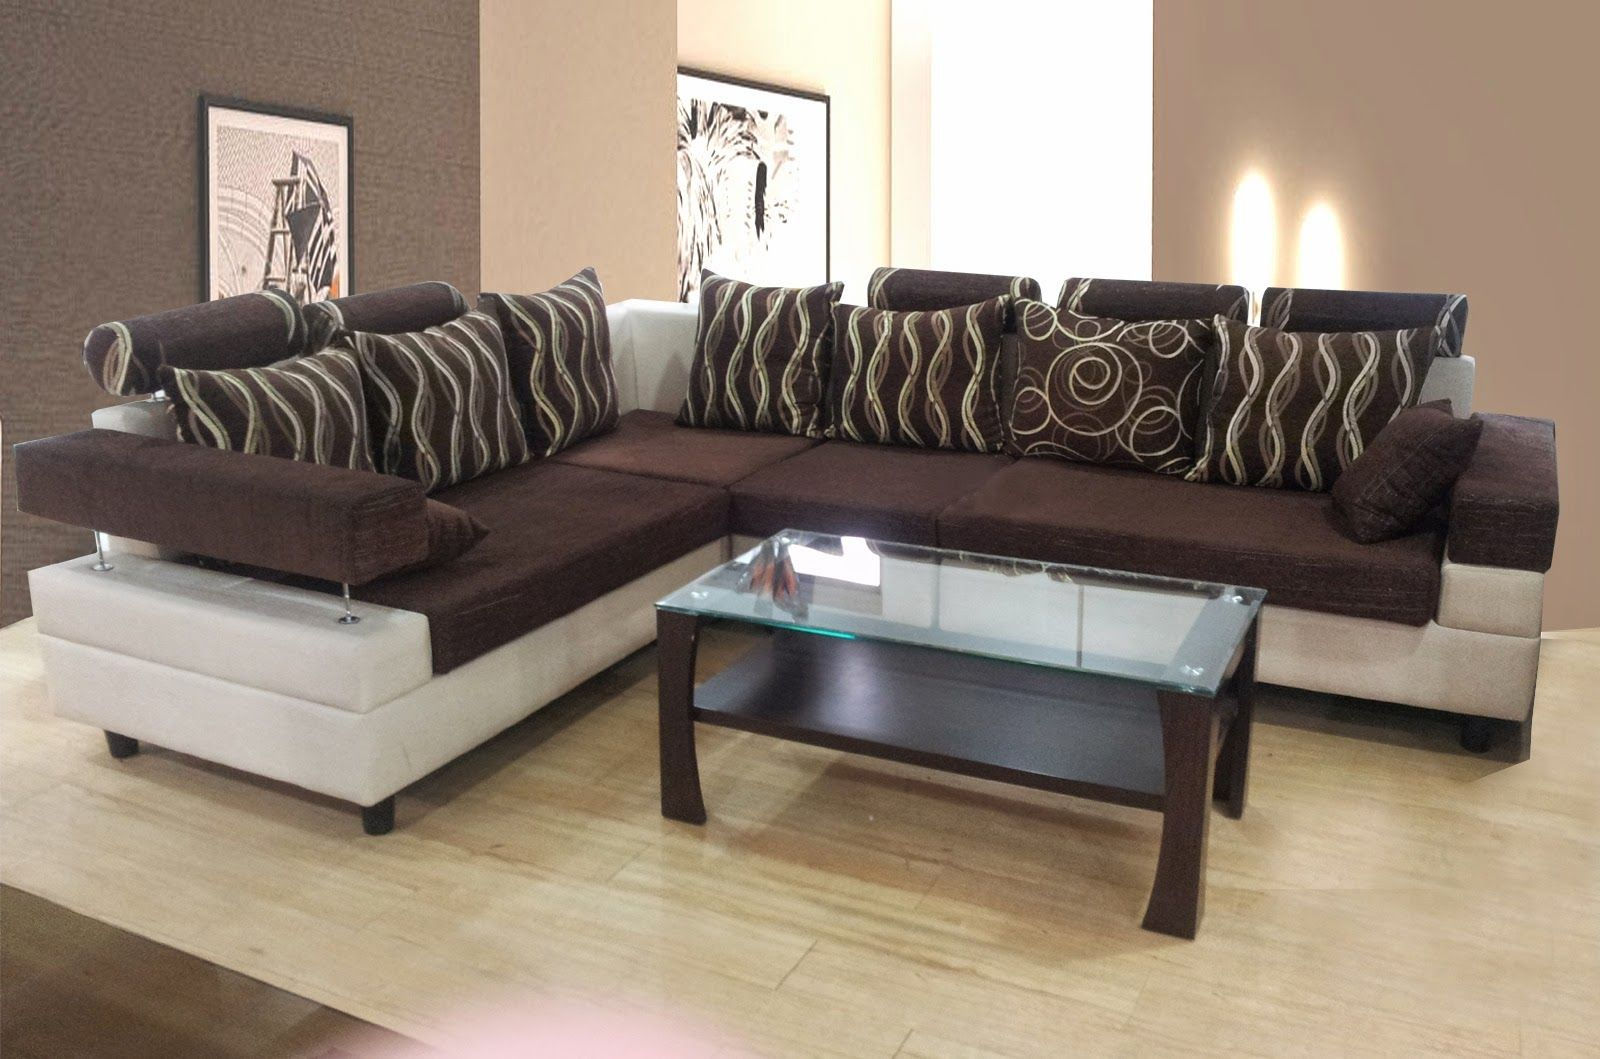 Nairobi luxe sofa sets welcome to nairobi luxe furniture for Couch sofa set